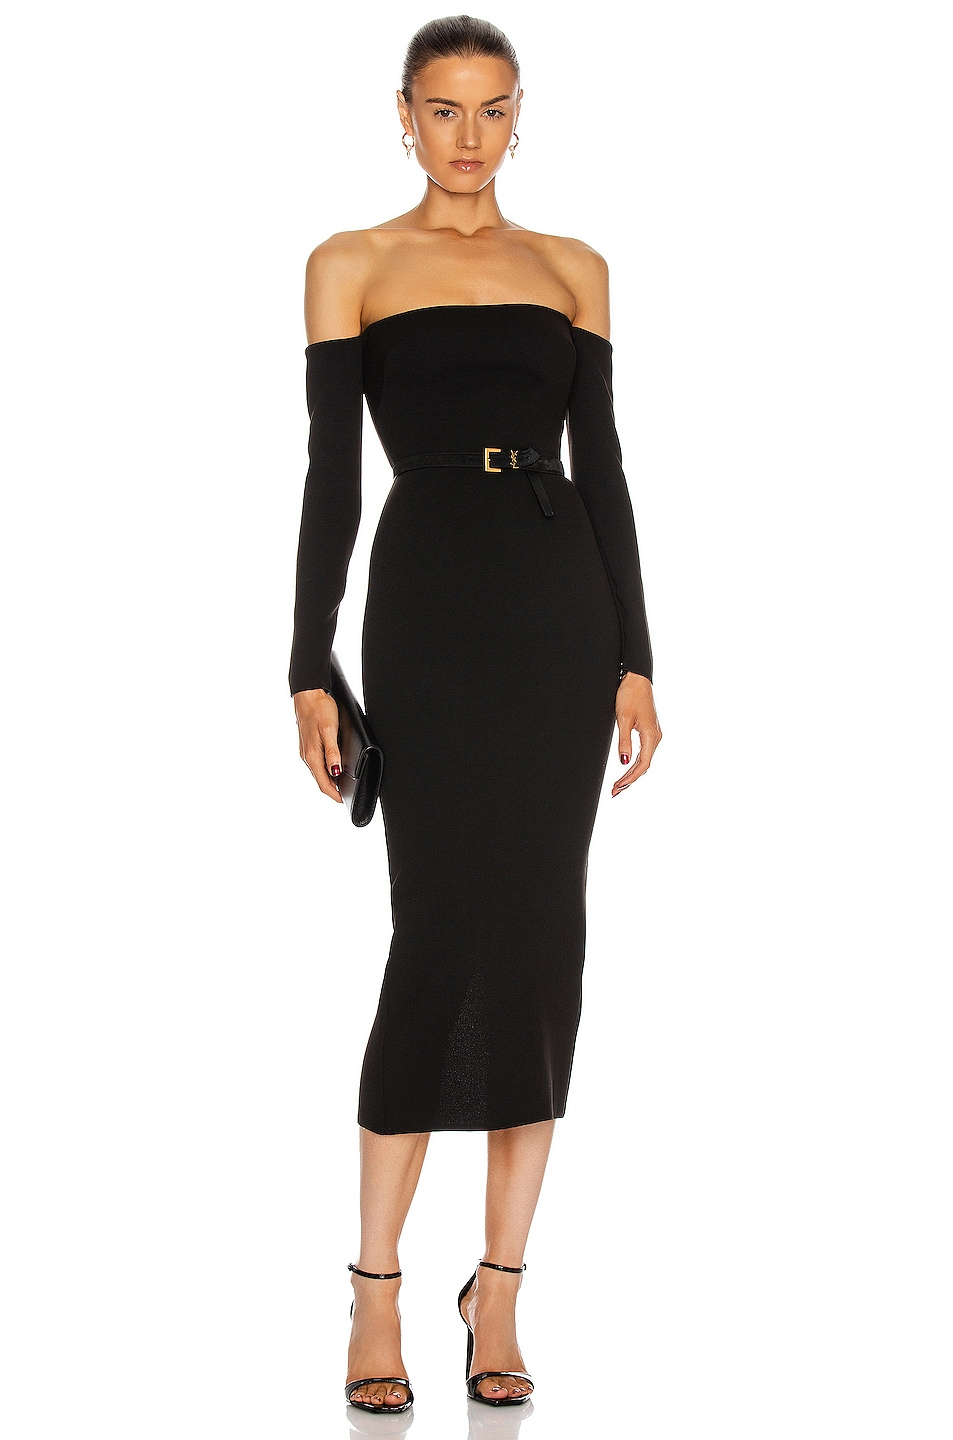 Image 1 of Alex Perry Tate Dress in Black